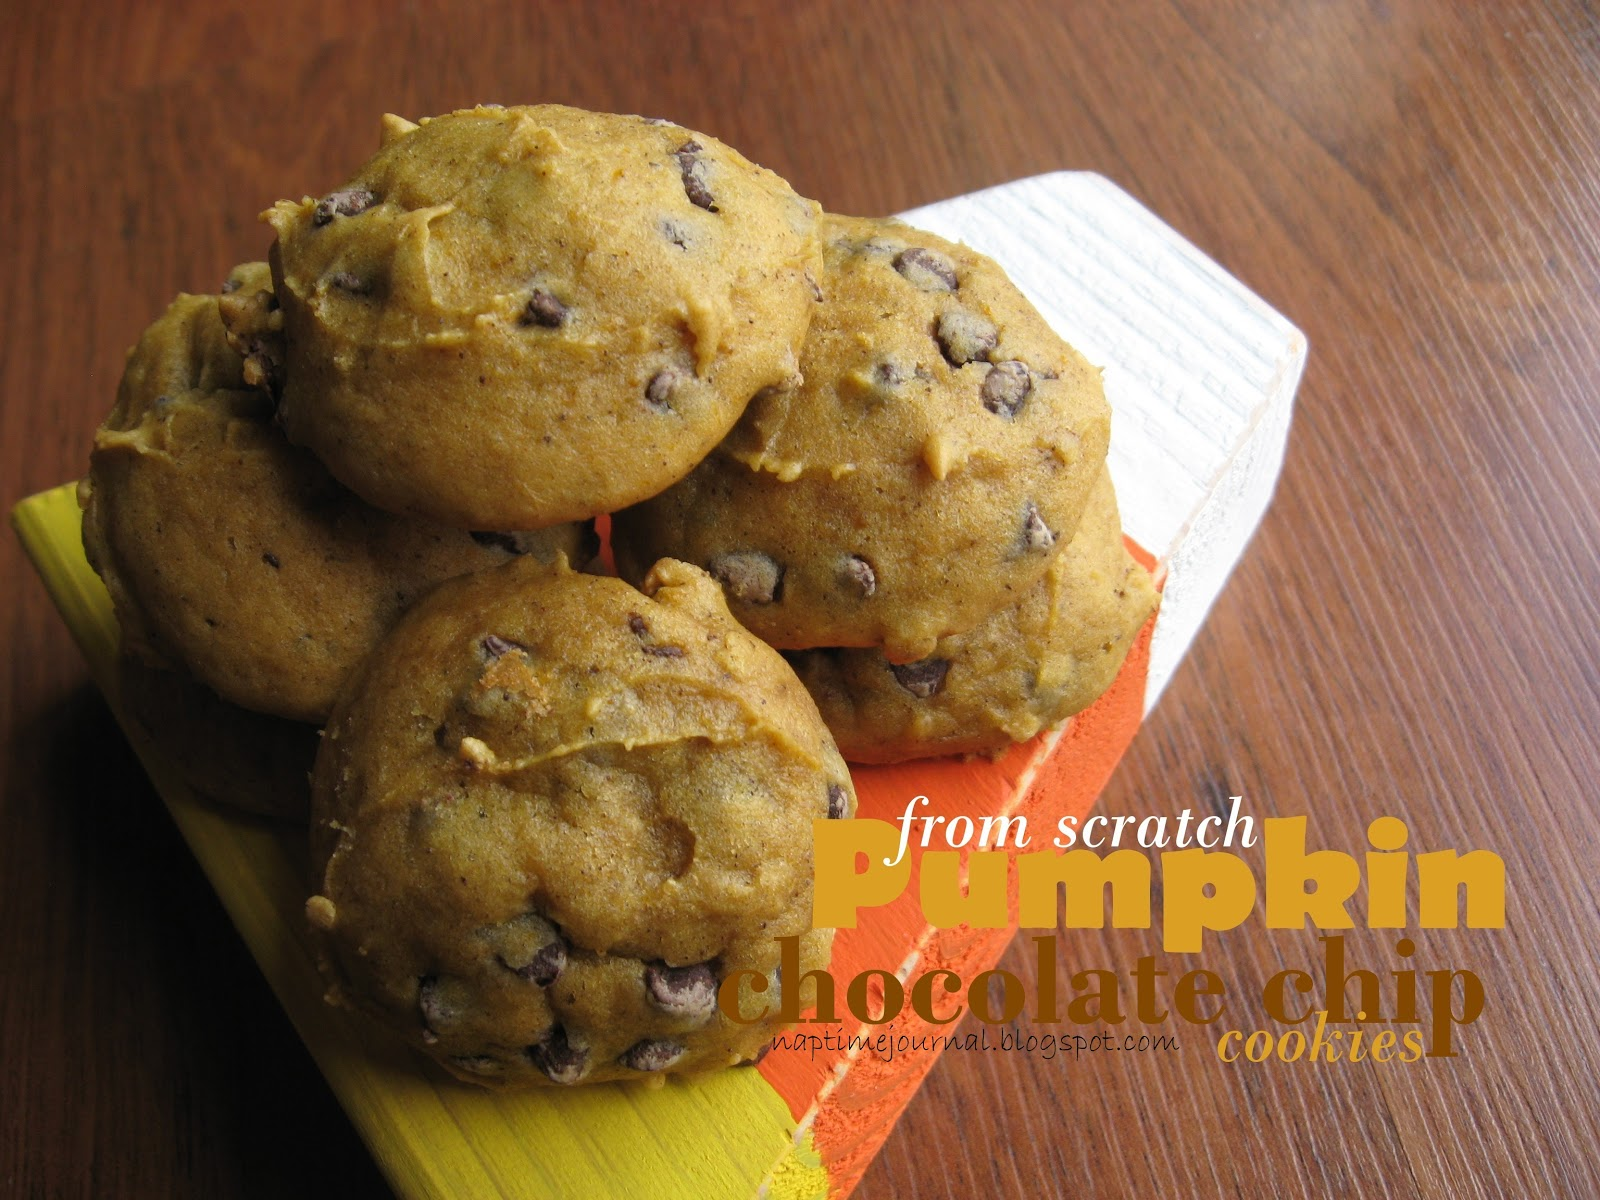 Image Result For Cake Box Pumpkin Chocolate Chip Cookies